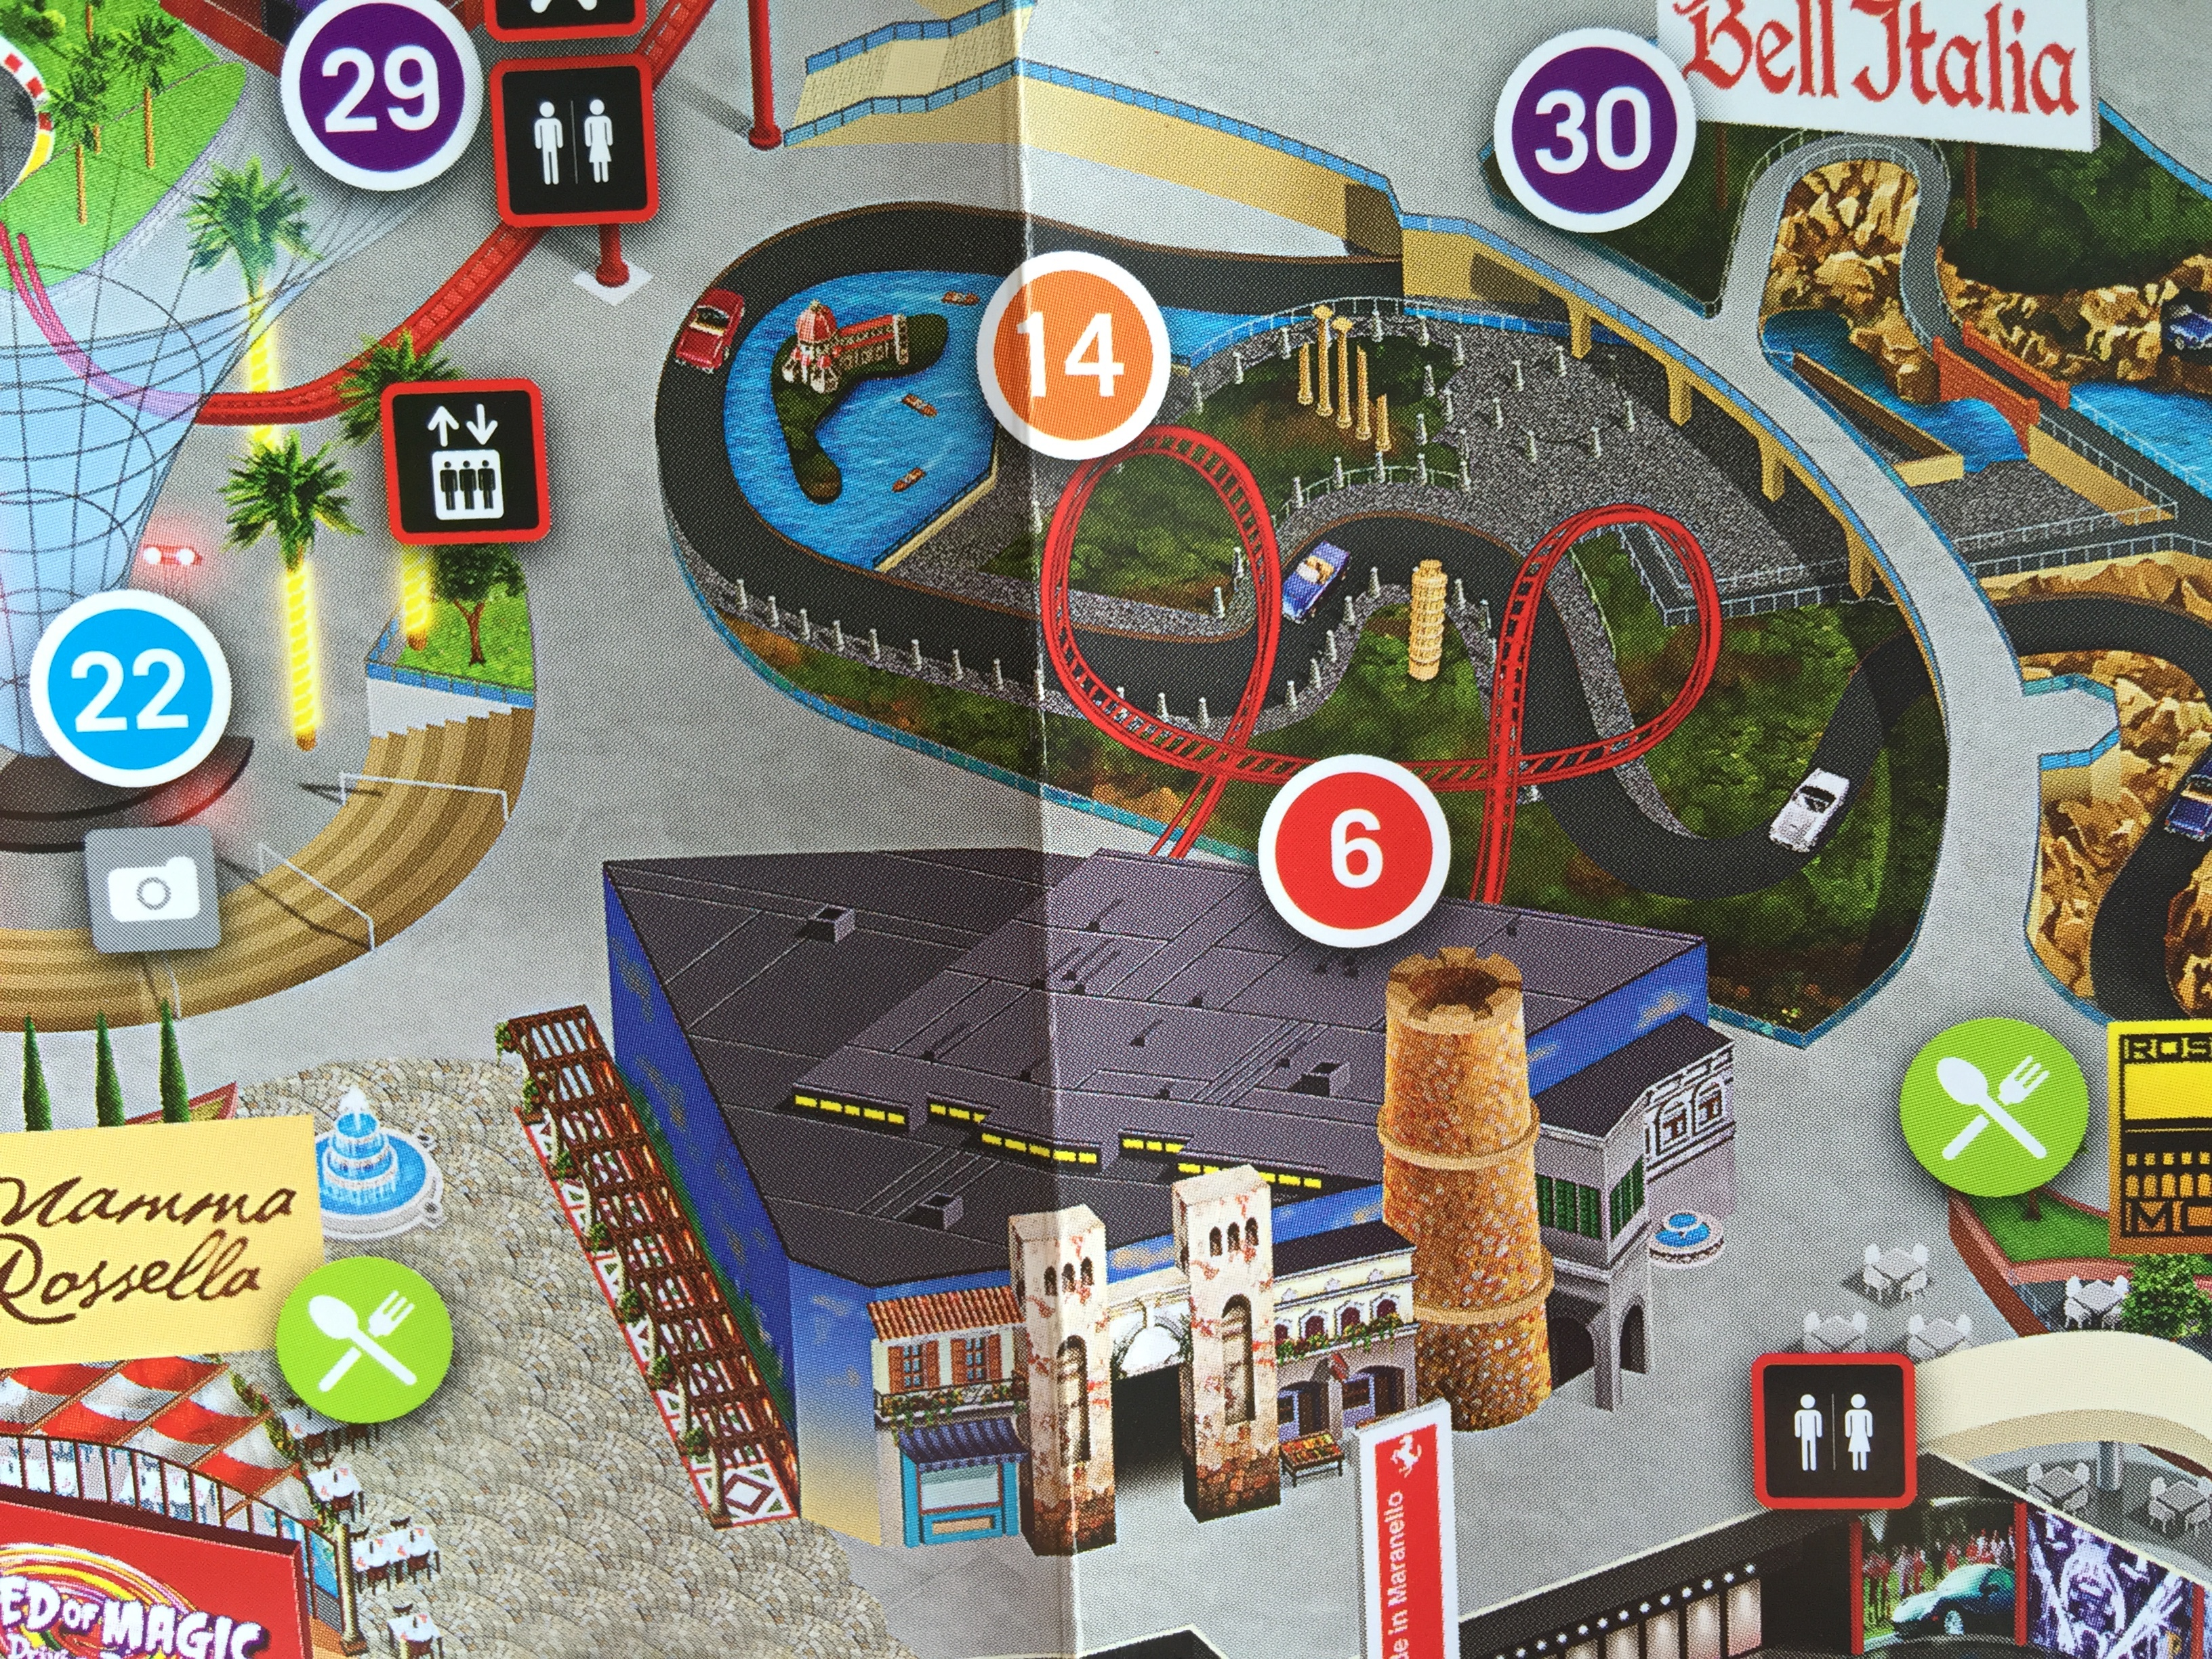 Ferrari World Map.Ferrari Parking Games Car Image Idea